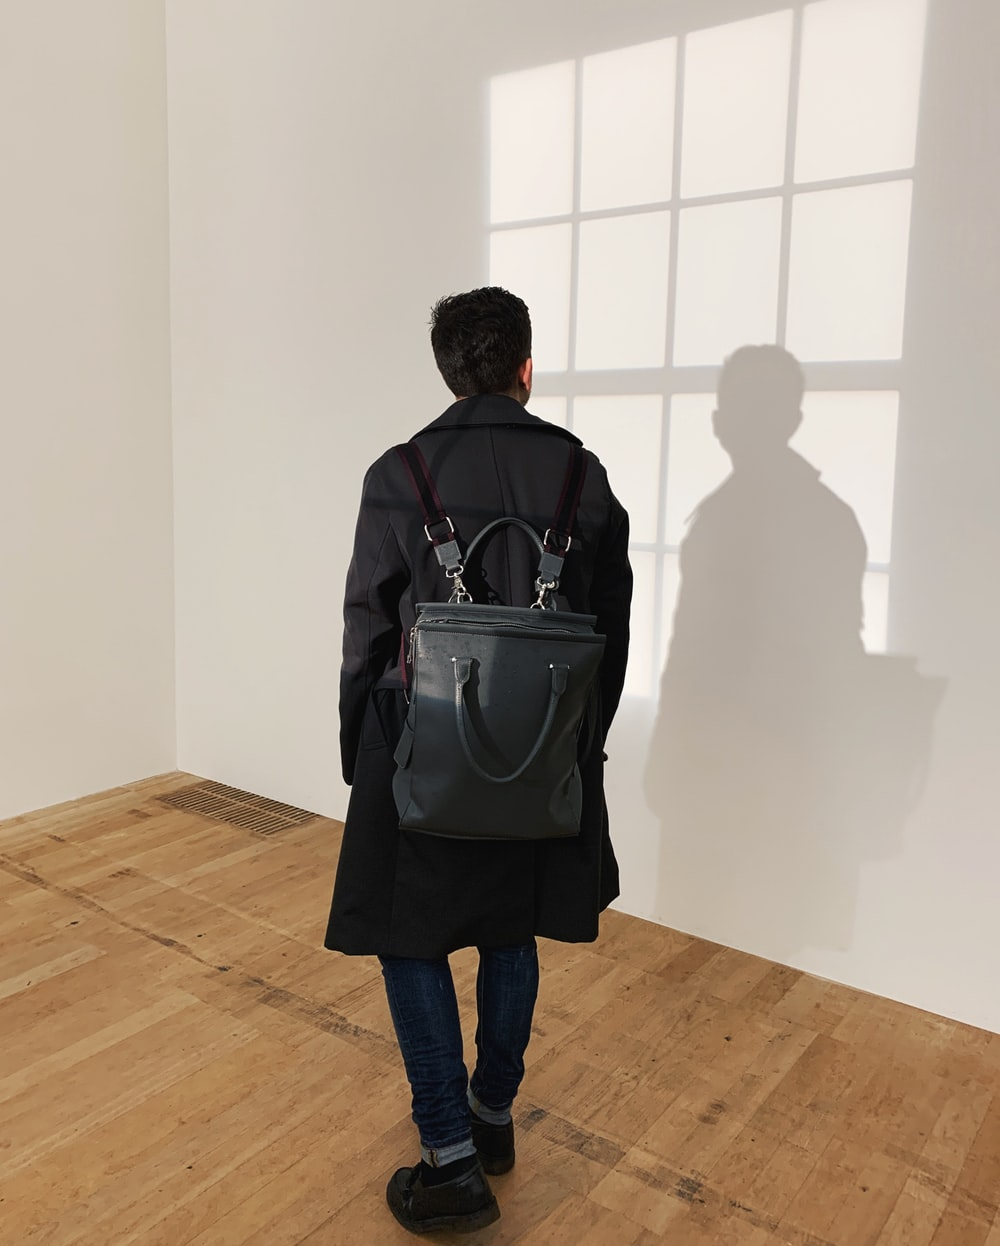 man wearing black leather backpack standing near the wall